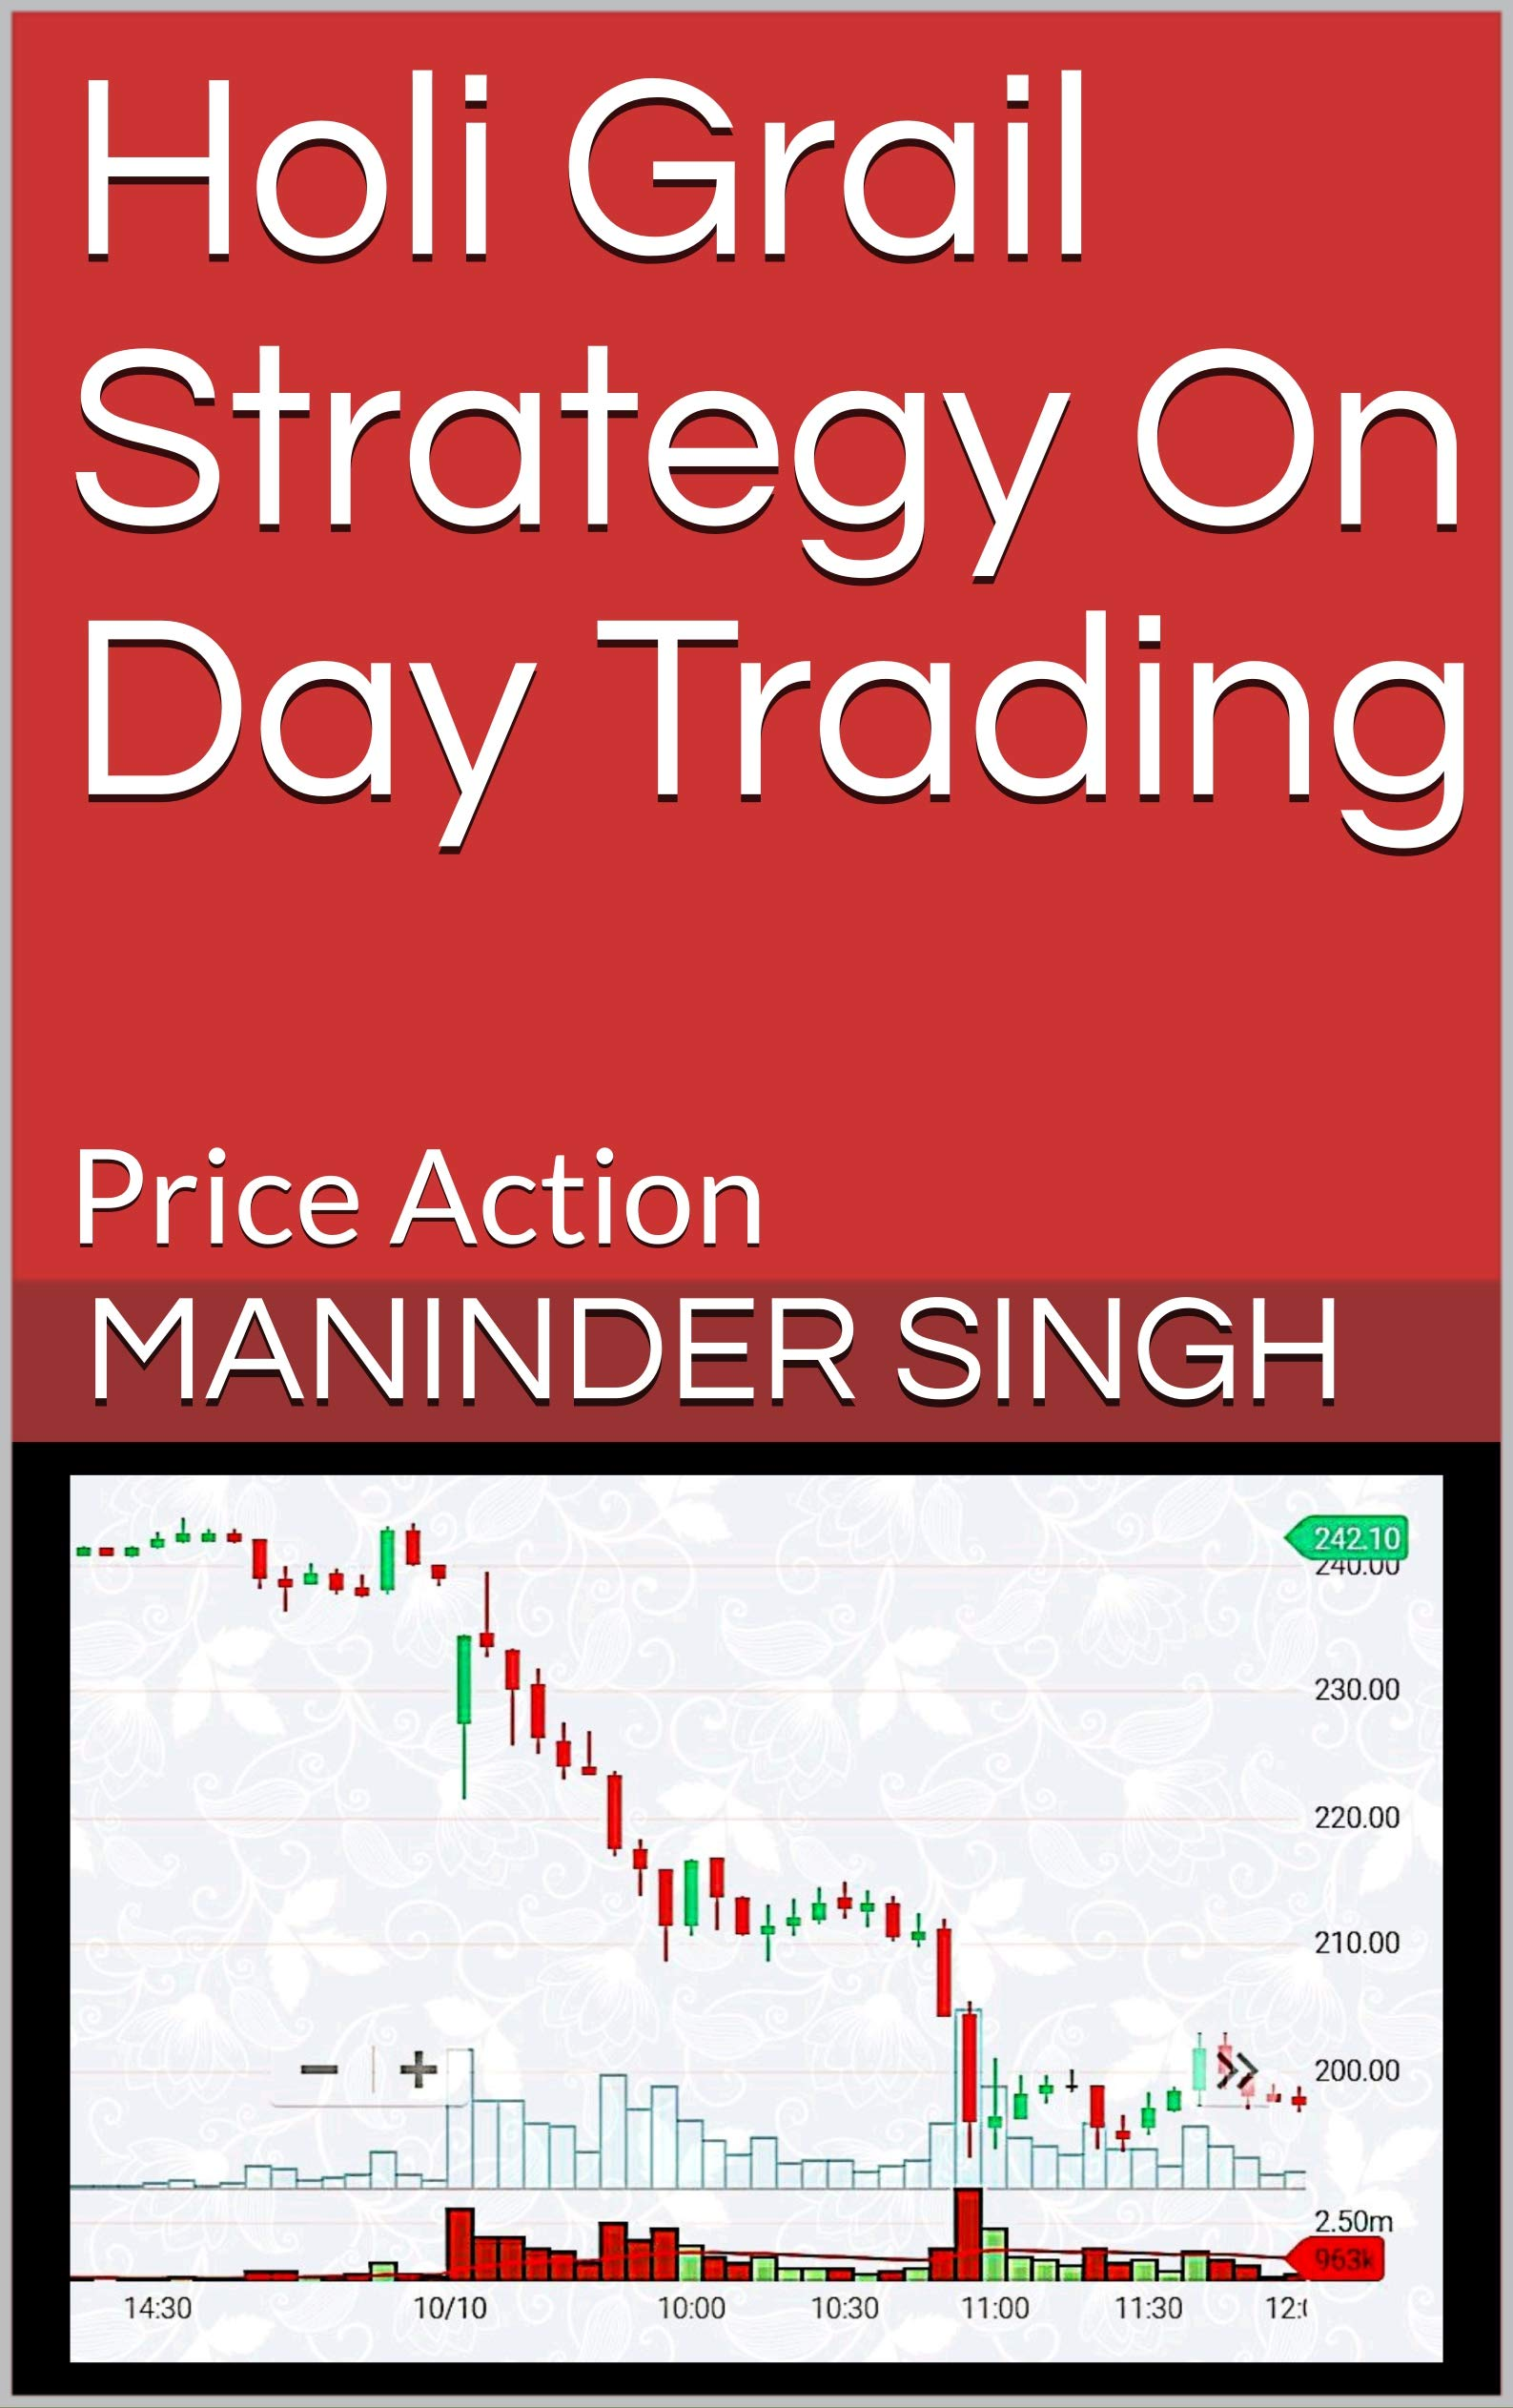 Holi Grail Strategy On Day Trading: Price Action (Holi Grail On Day Trading Book 5)